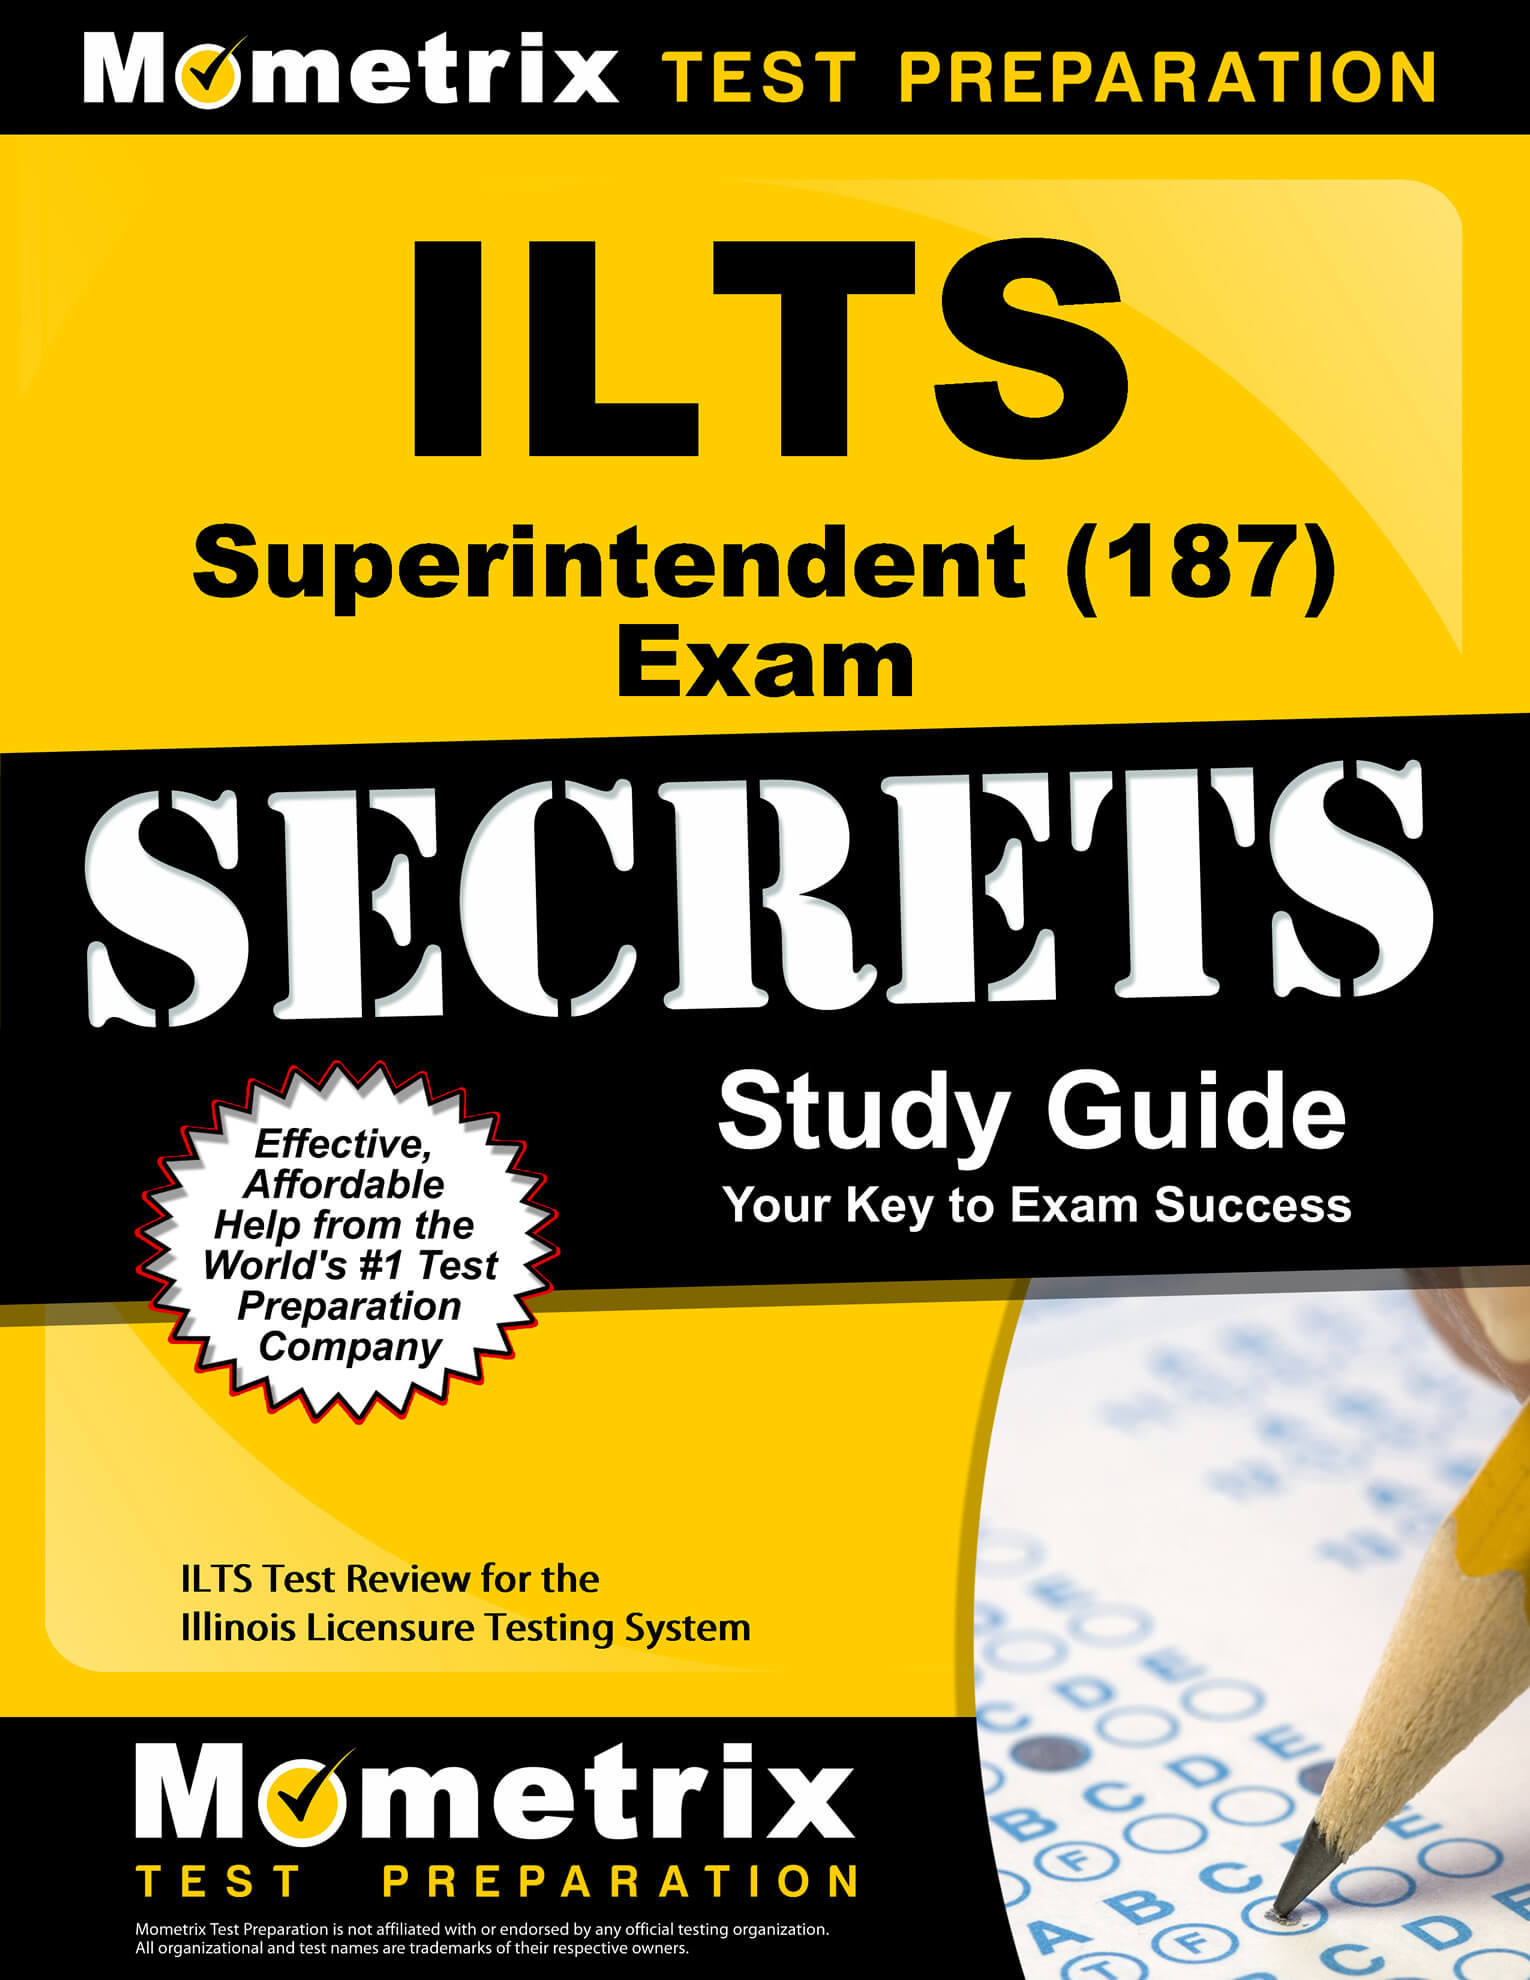 ILTS Superintendent Study Guide